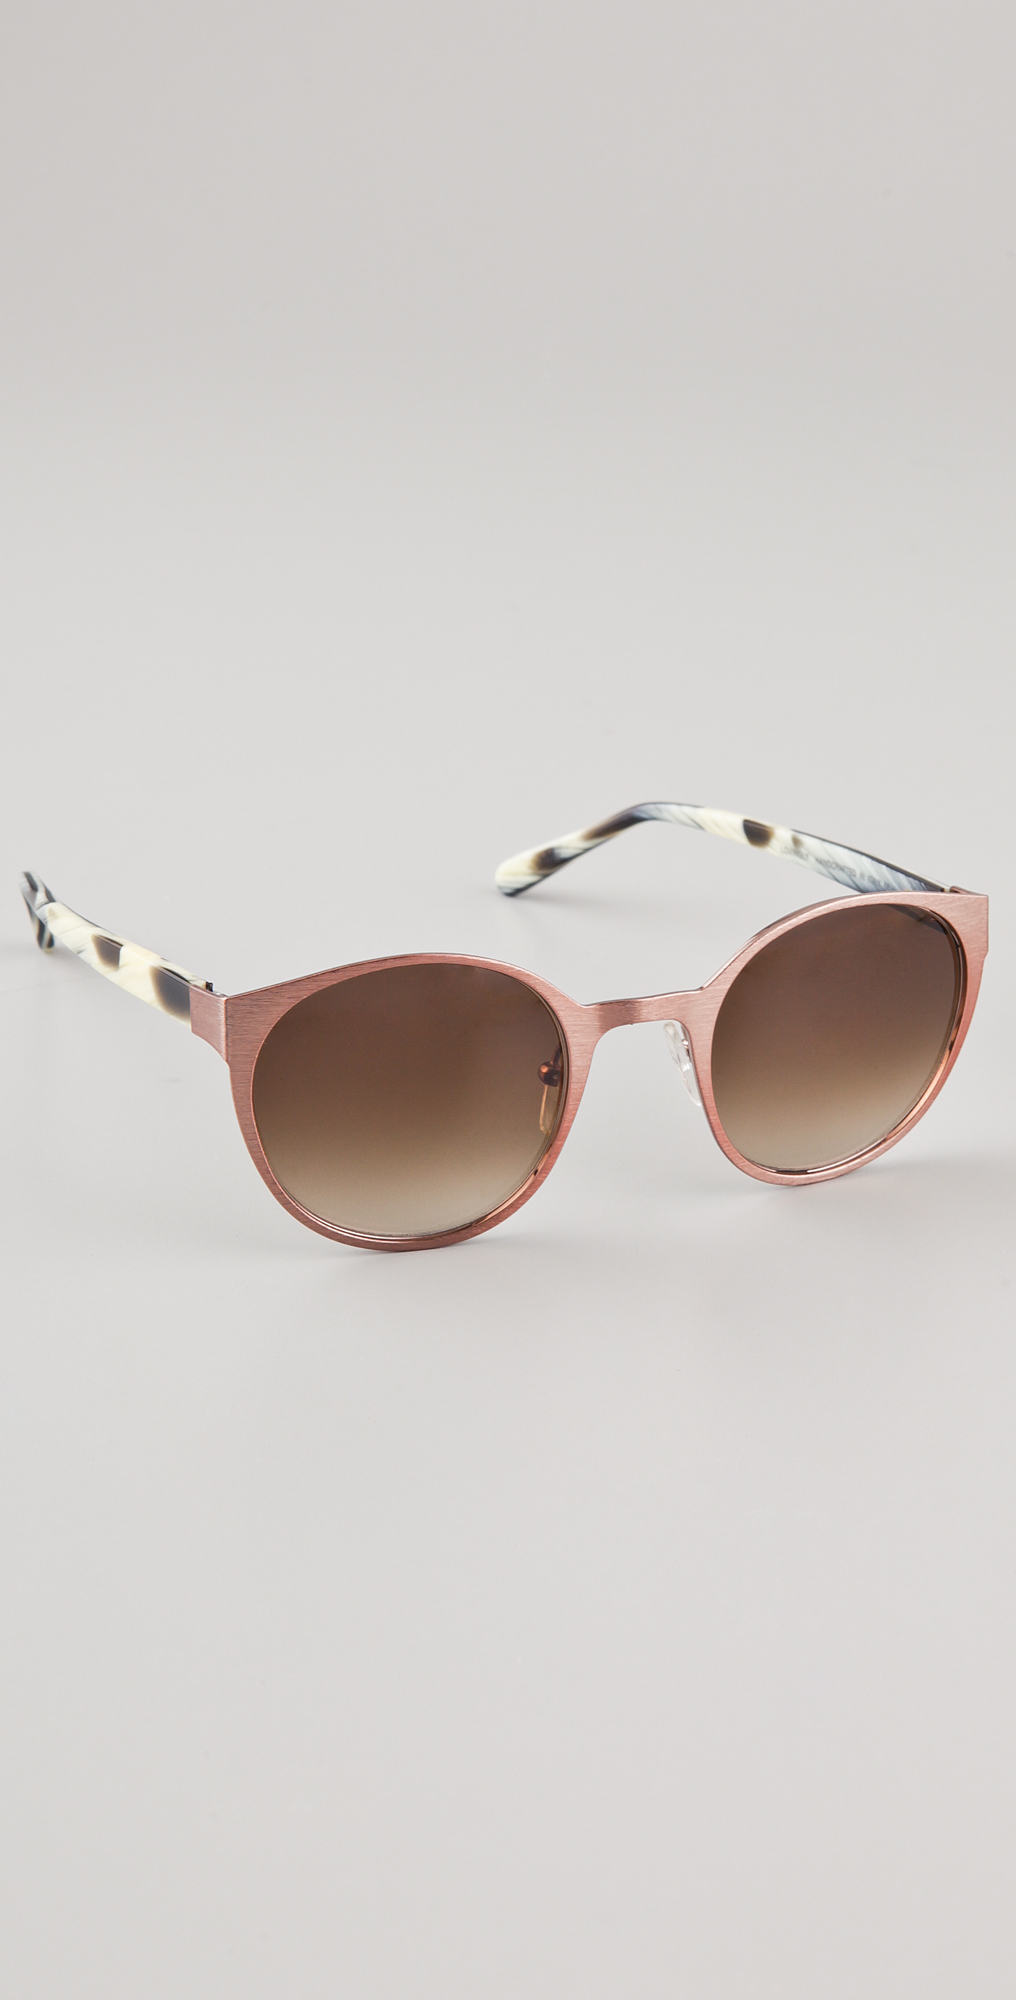 vuarnet sunglasses  sunglasses